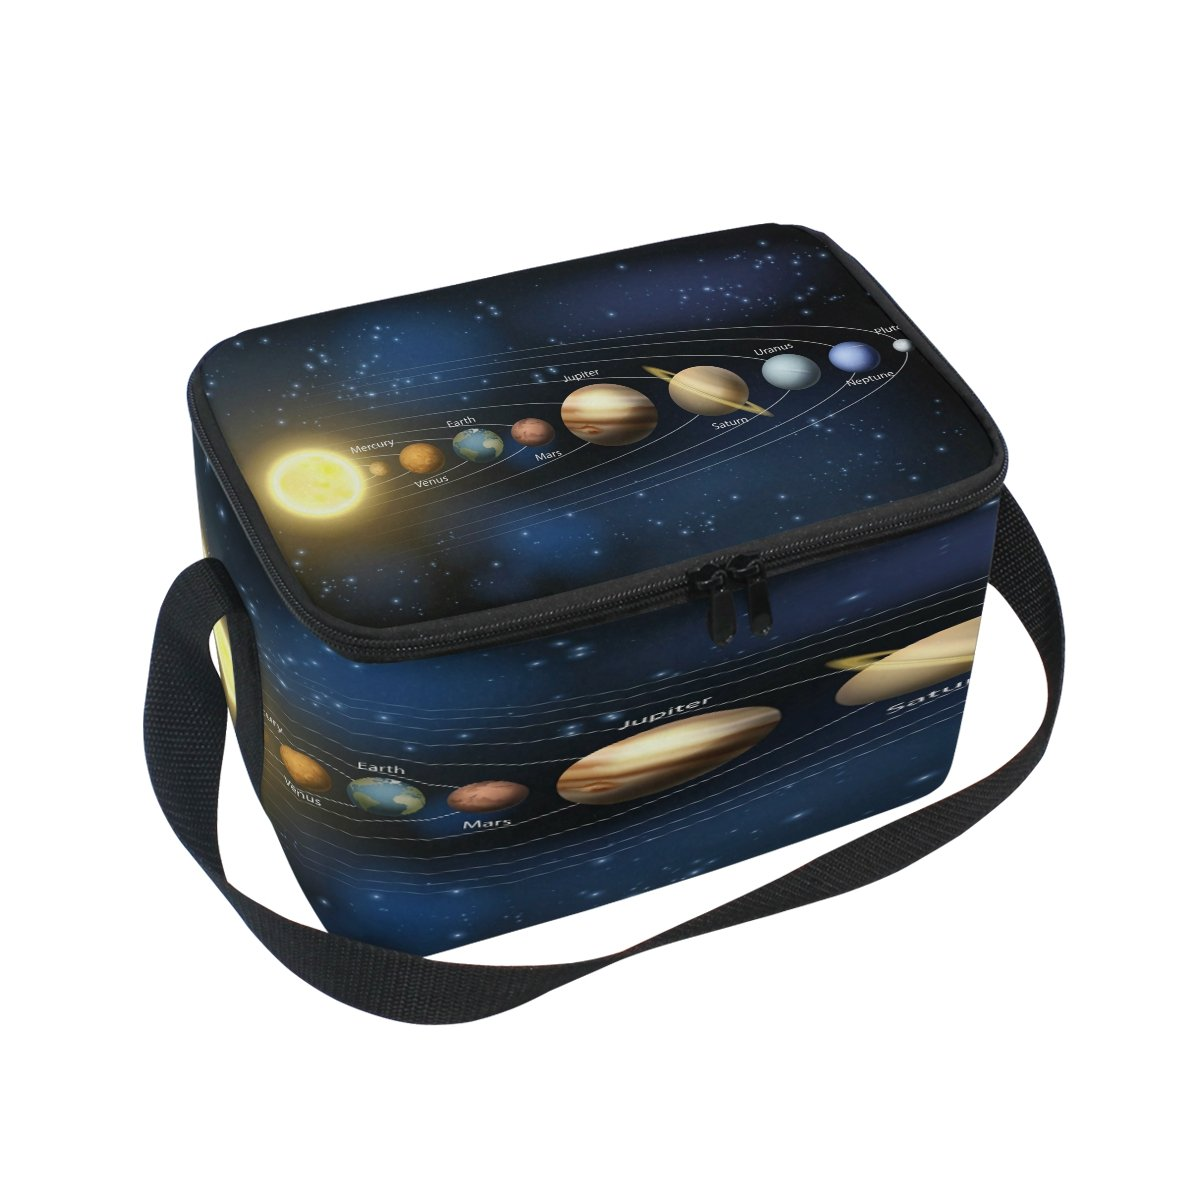 Use4 Planet Solar System Universe Insulated Lunch Bag Tote Bag Cooler Lunchbox for Picnic School Women Men Kids